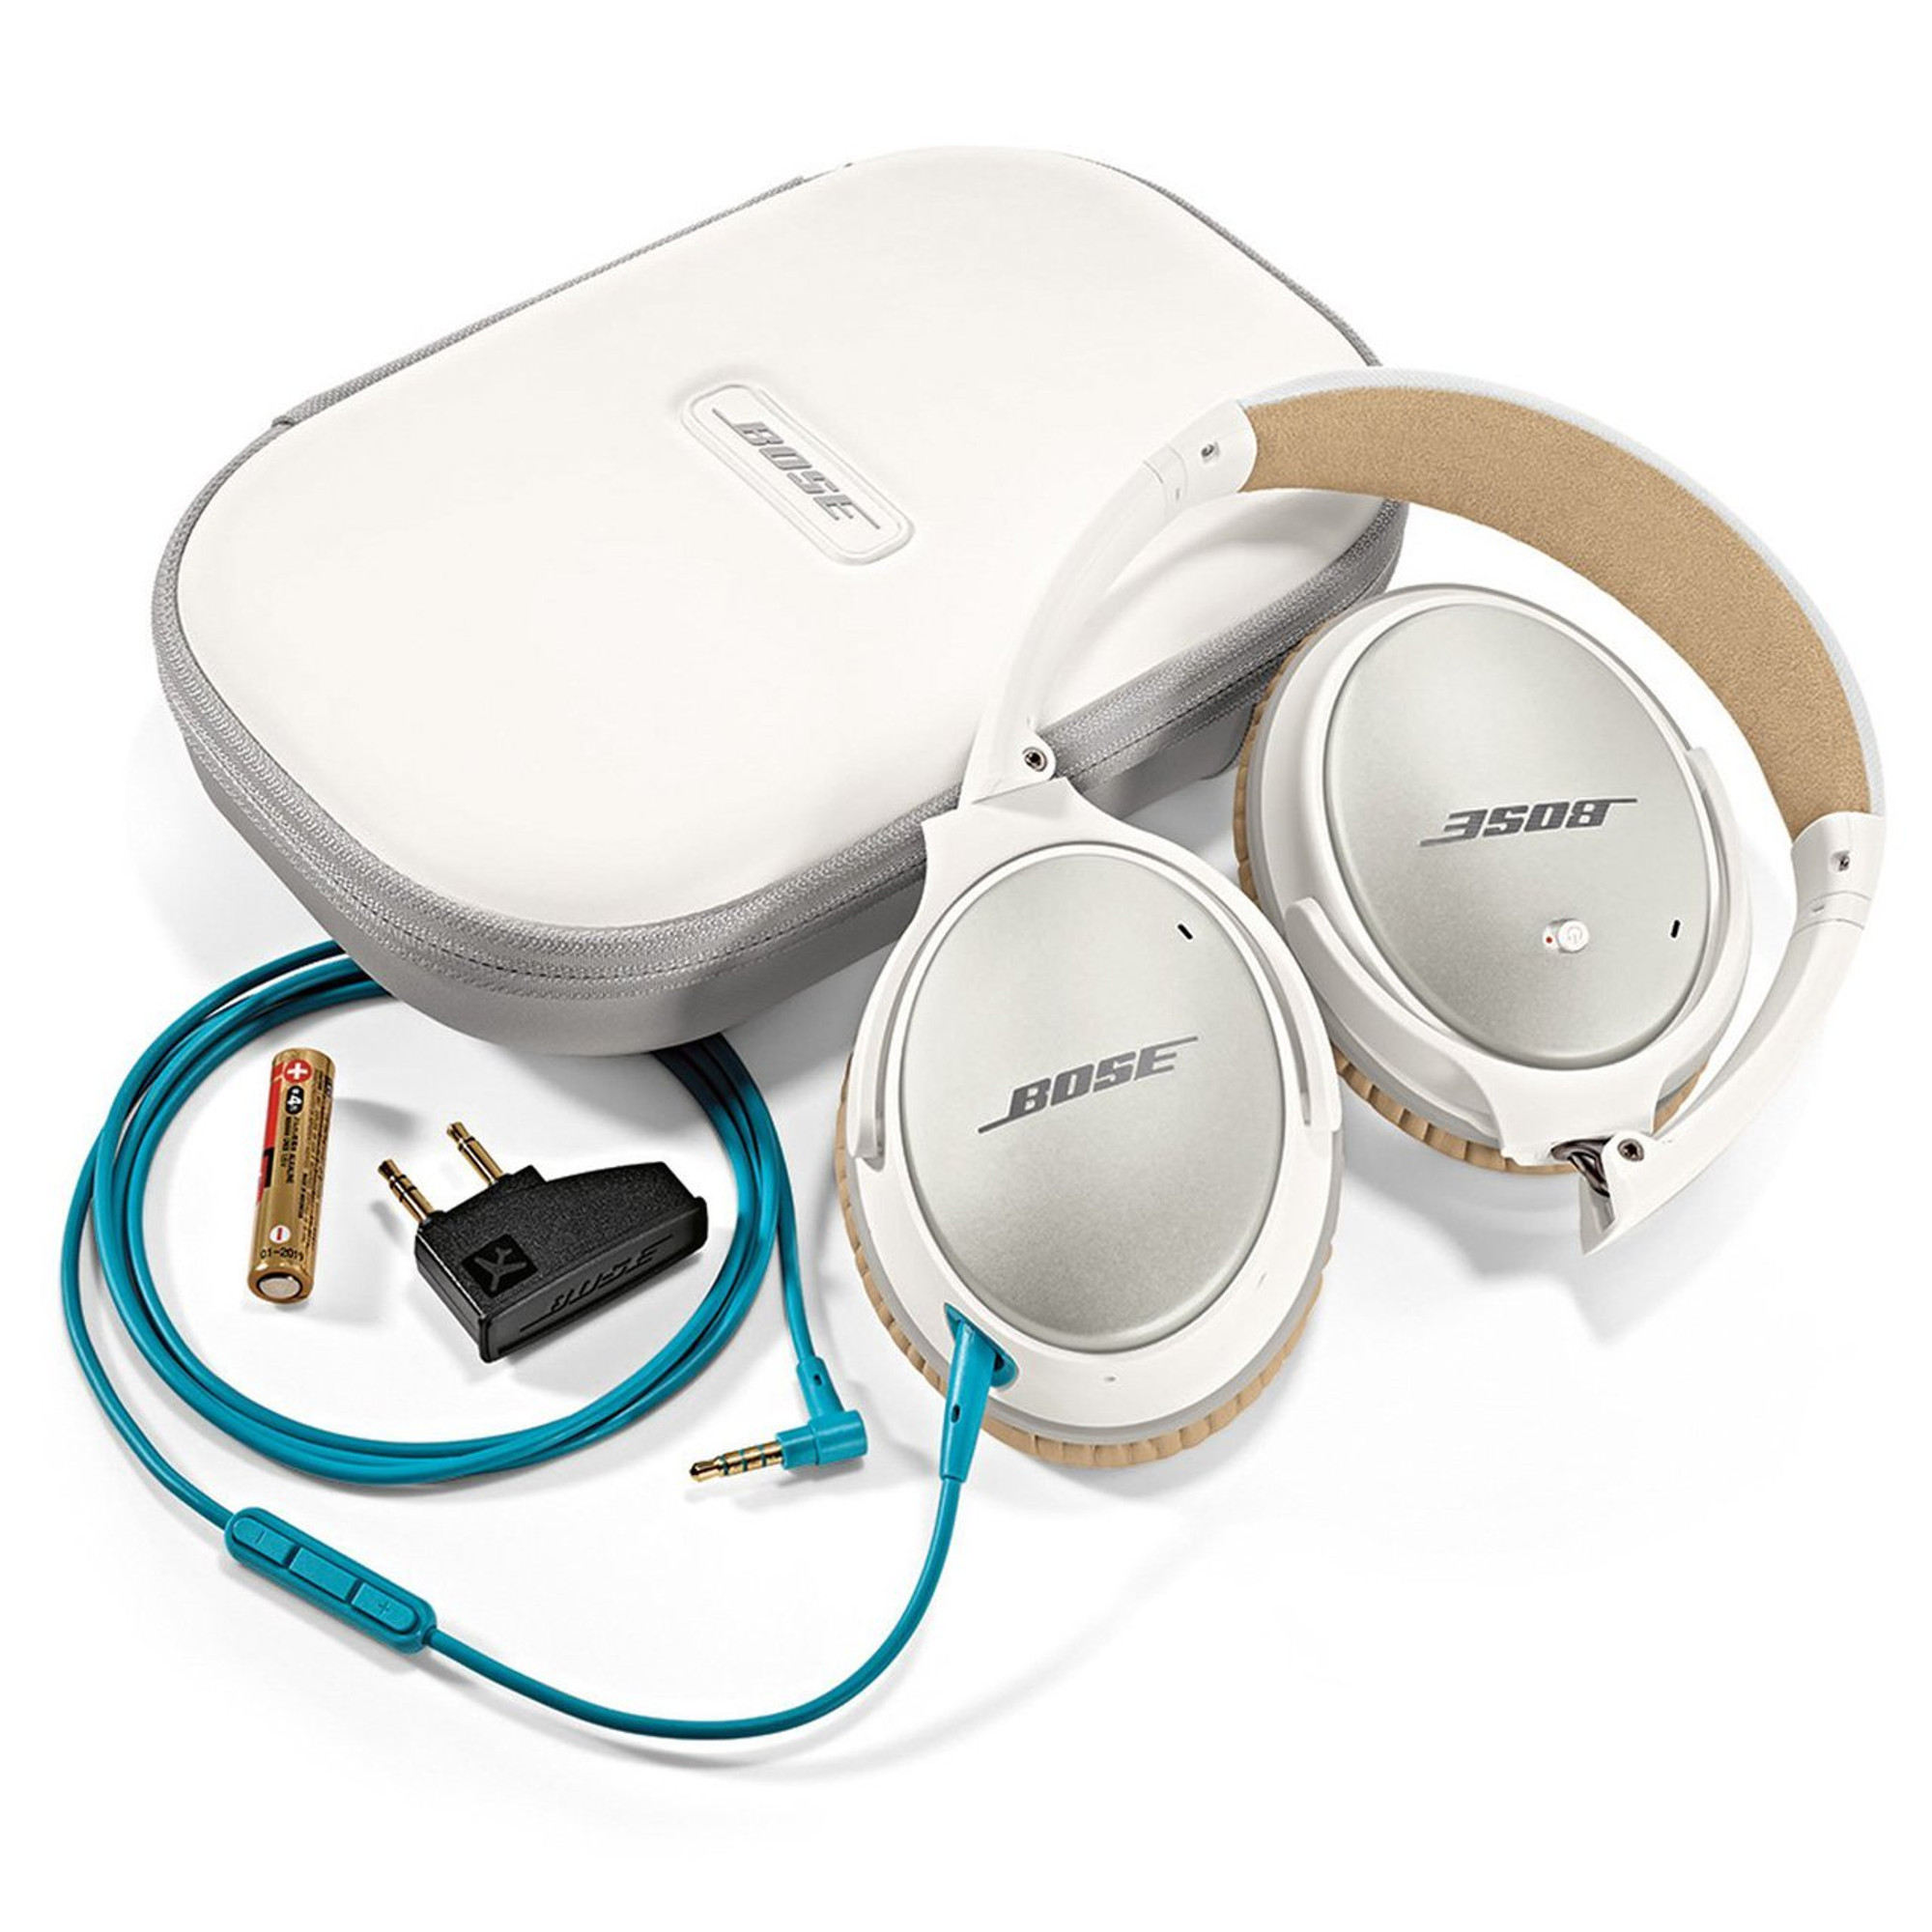 4a6c8168b37 Bose QuietComfort 25 Noise Cancelling Headphones For Android Devices (White)